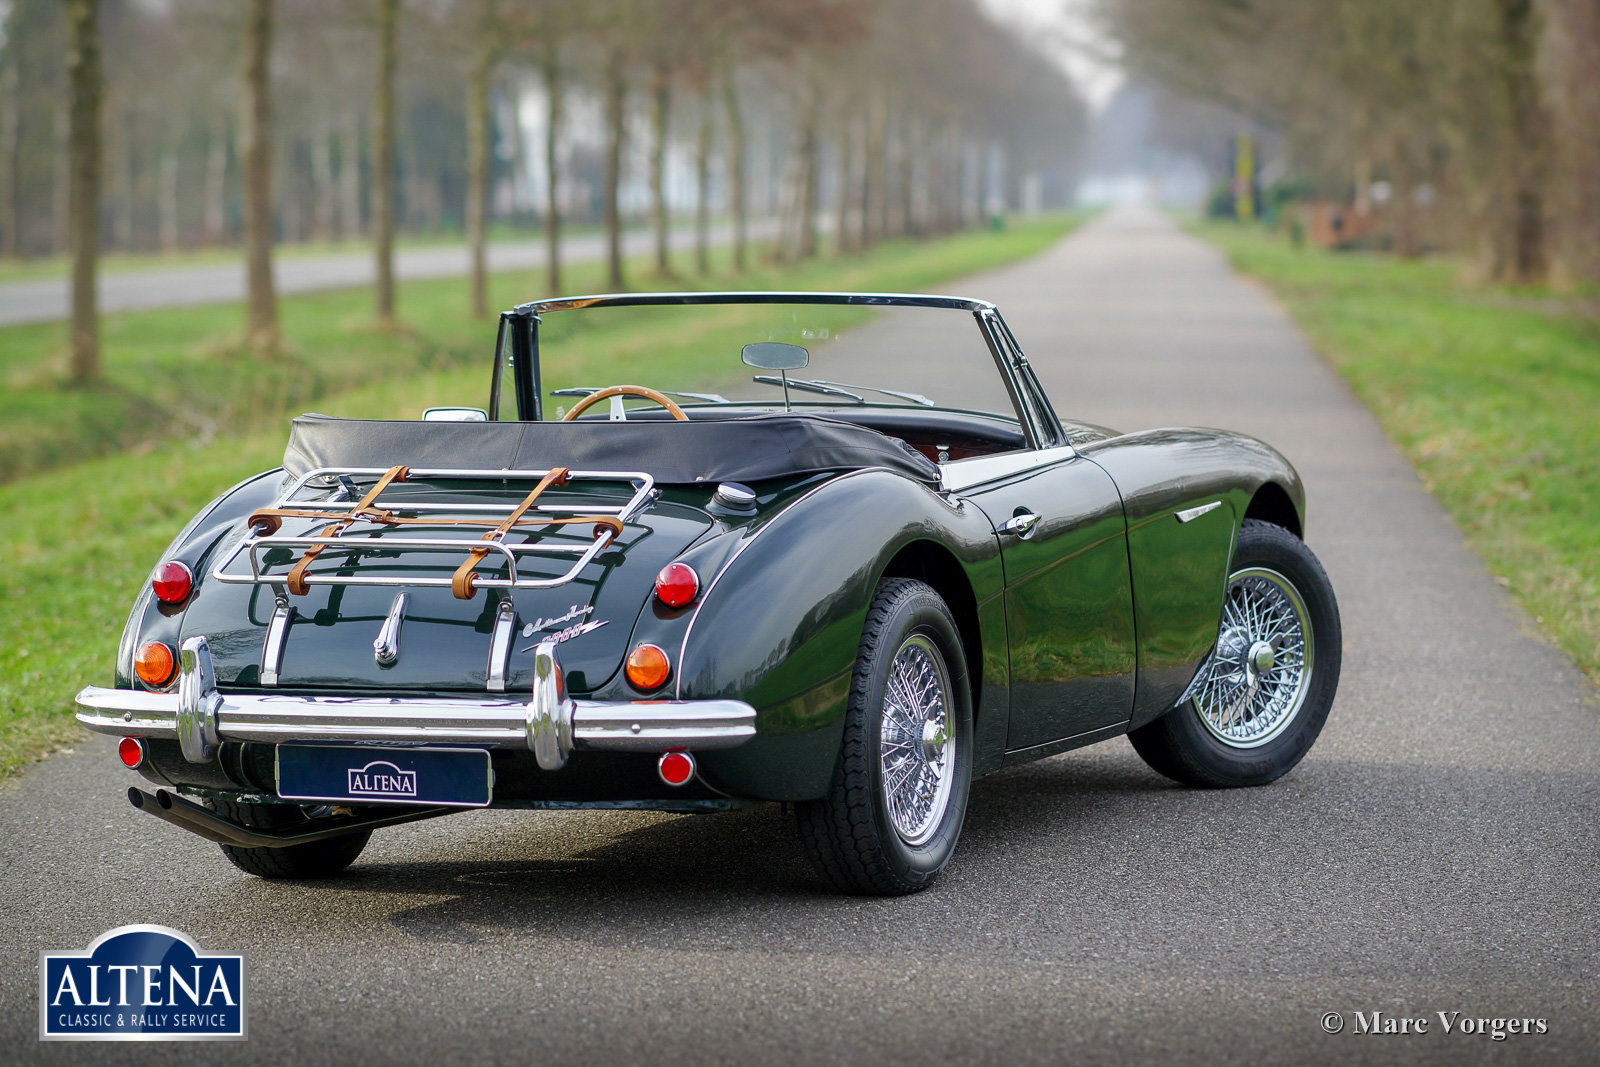 Austin Healey 3000 MK III, 1966 For Sale (picture 4 of 6)